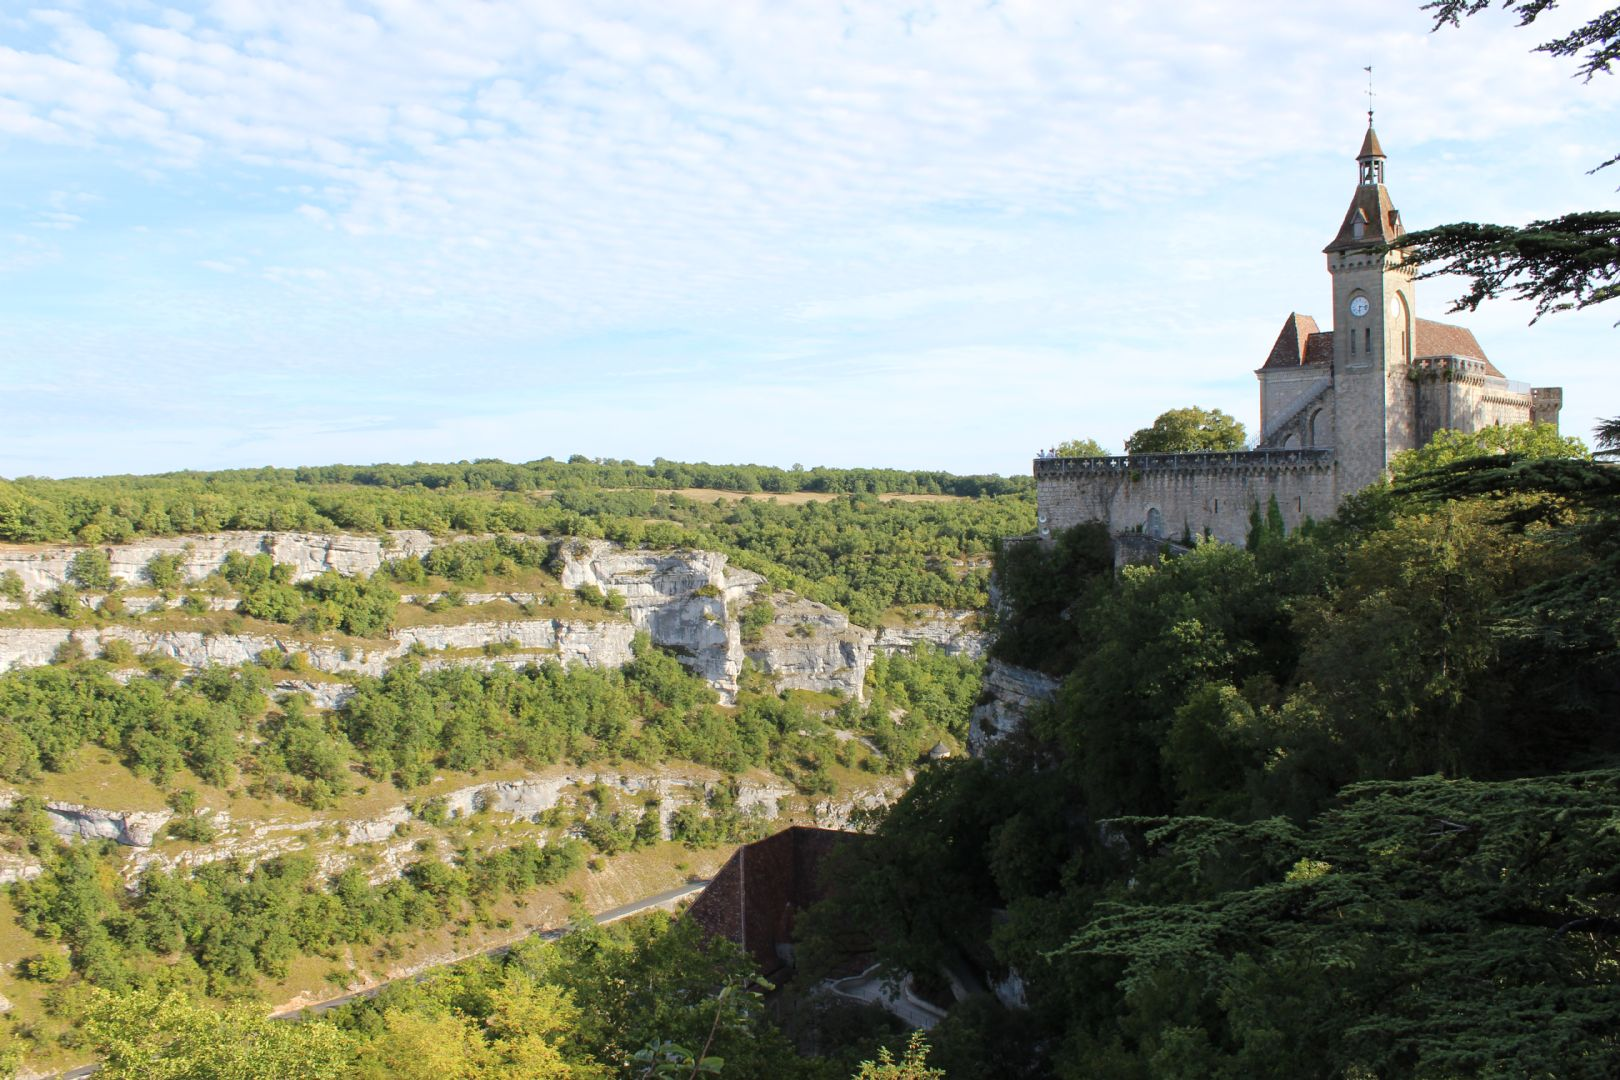 IMG_1096.JPG - France - Dordogne Delights - Self-Guided Leisure Cycling Holiday - Leisure Cycling